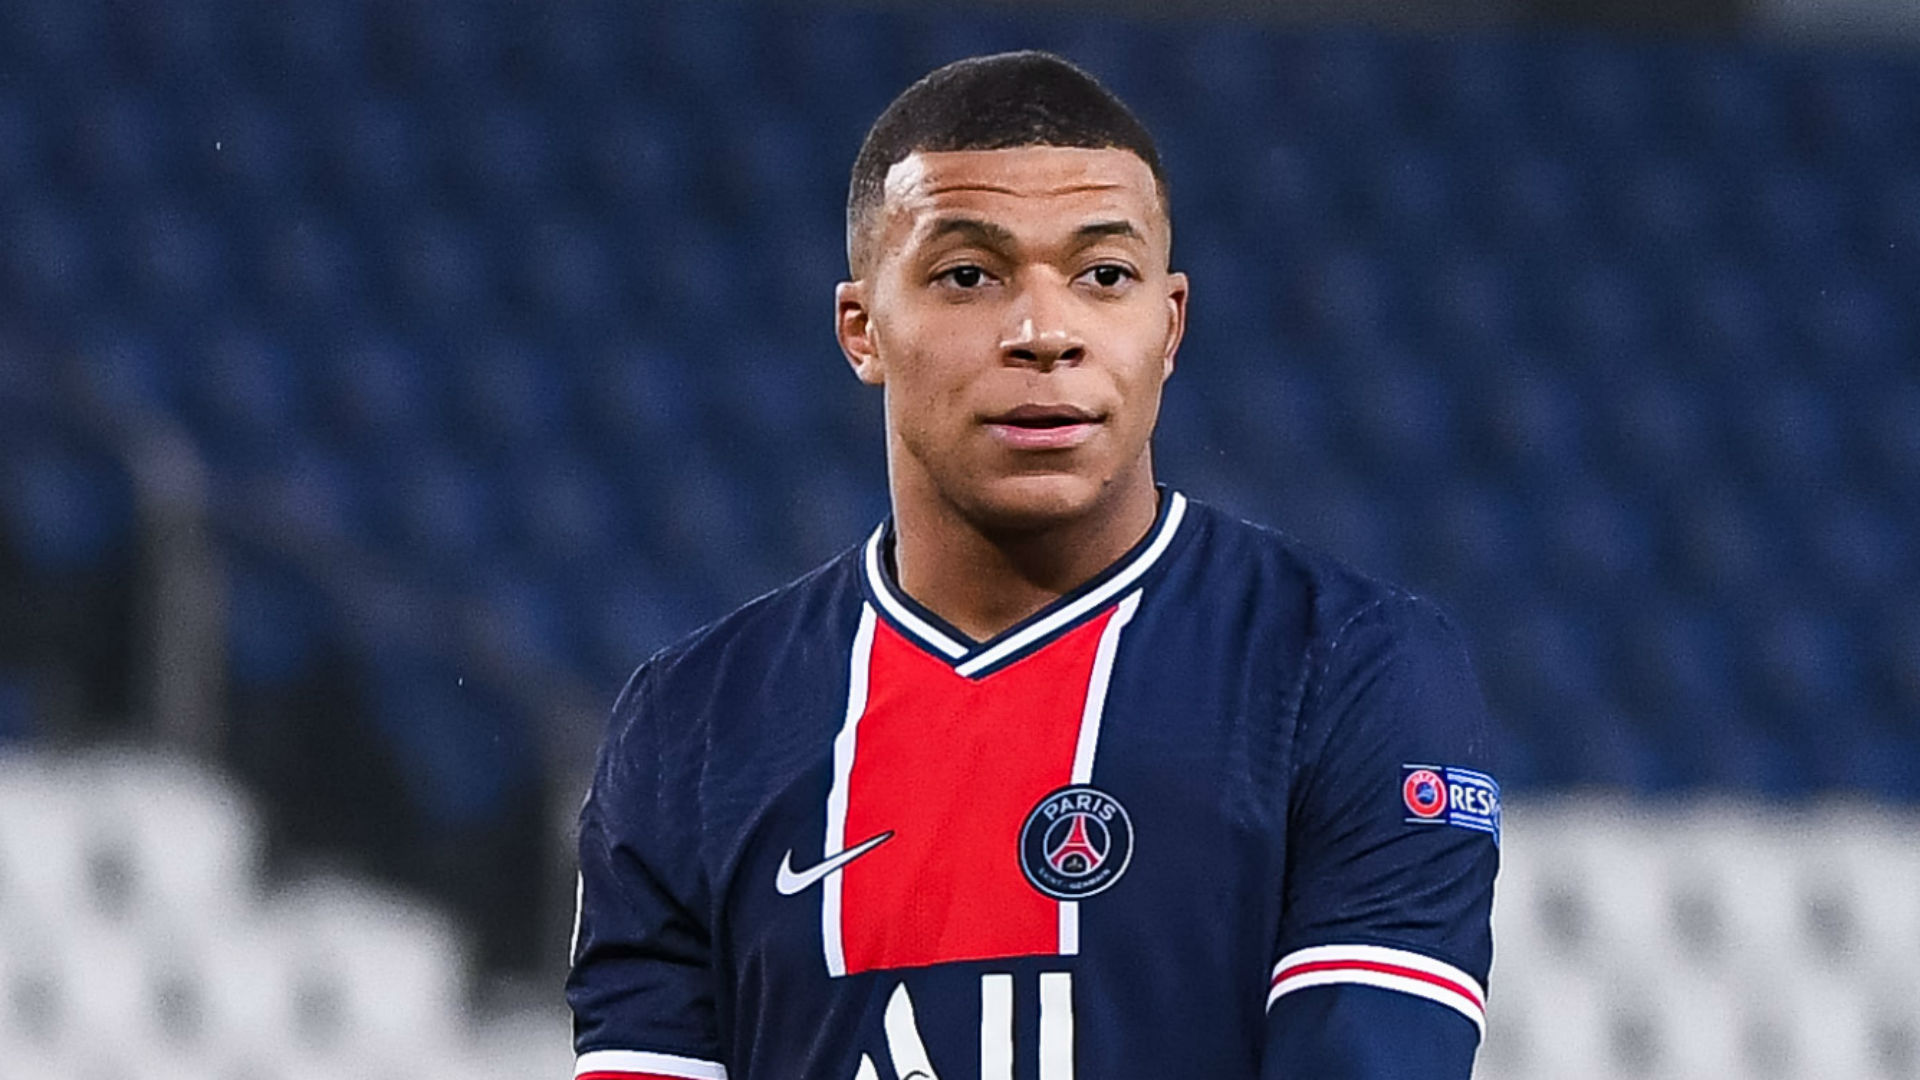 Rumour Has It: Mbappe's transfer to Real Madrid in doubt, PSG set to make moves